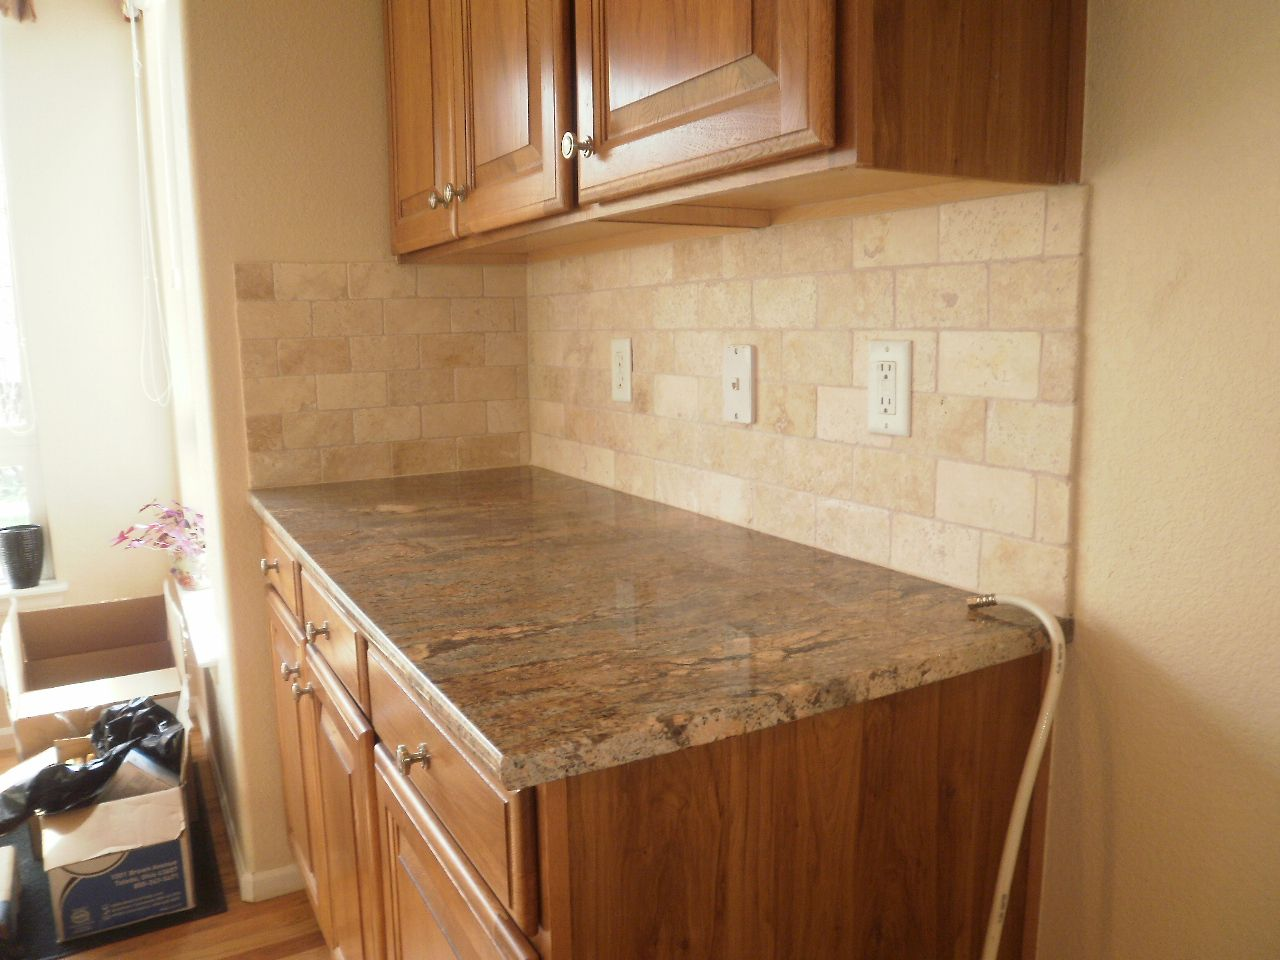 Travertine Tile Patterns for Kitchens | ... Range Backsplash): 3x6 ...